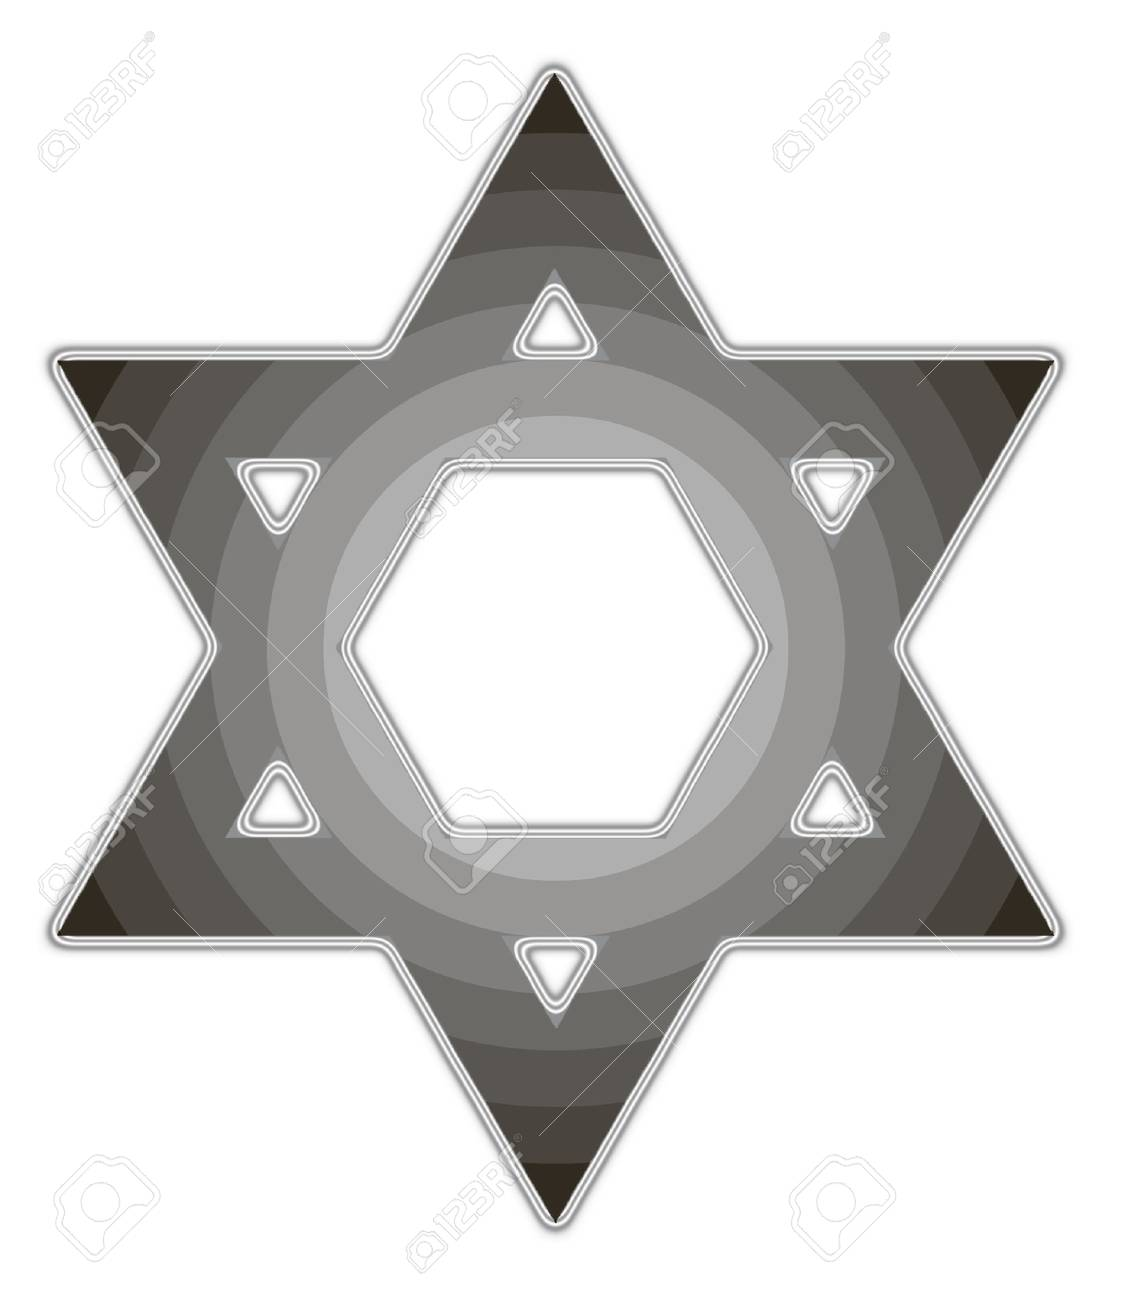 image of the Star of David on a white background isolated - 74937618